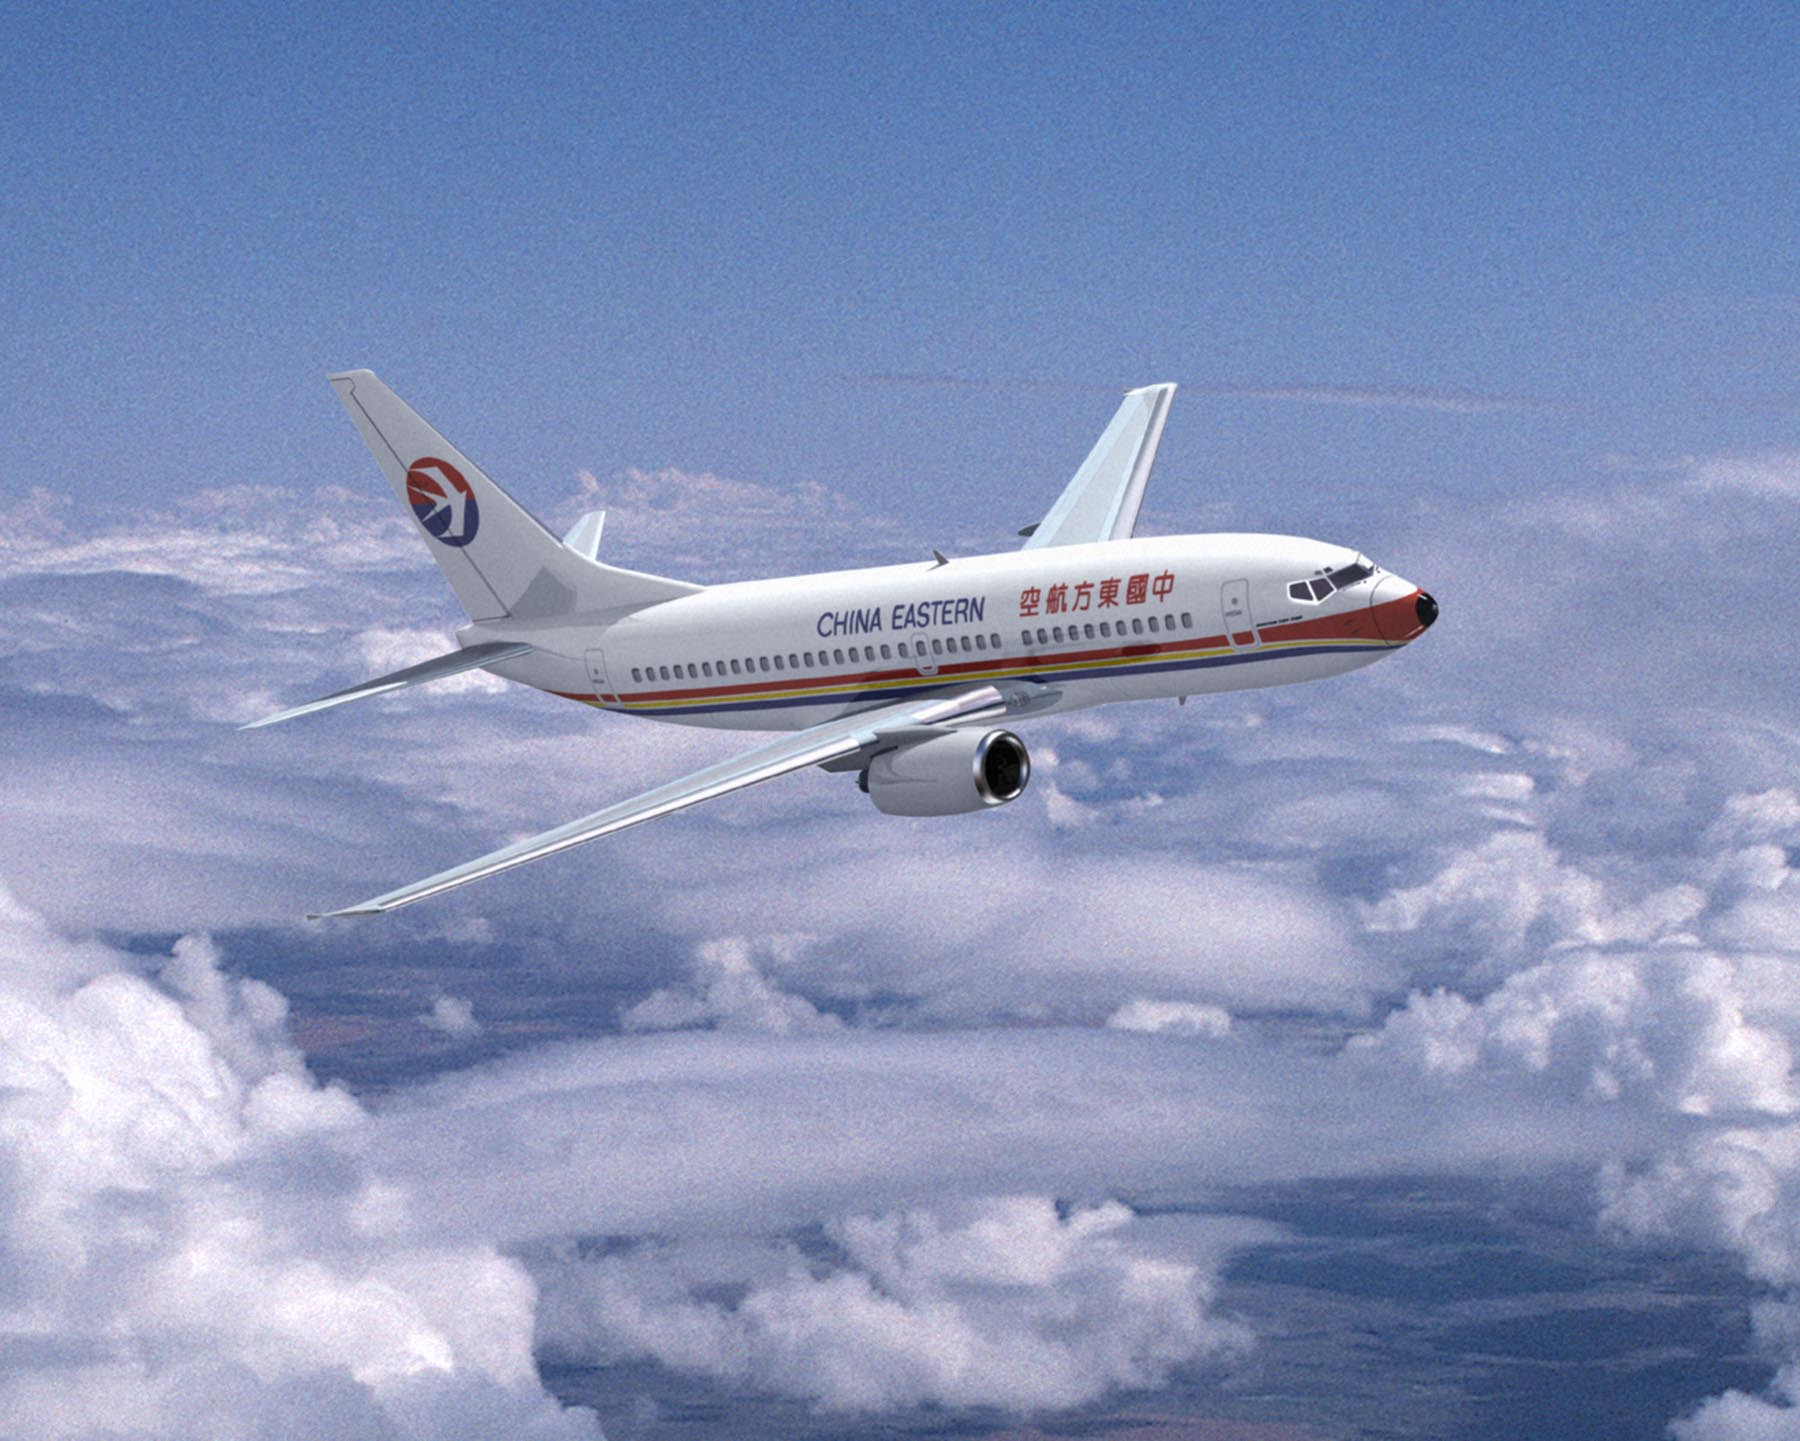 China eastern airlines wikipedia autos post - China eastern airlines vietnam office ...